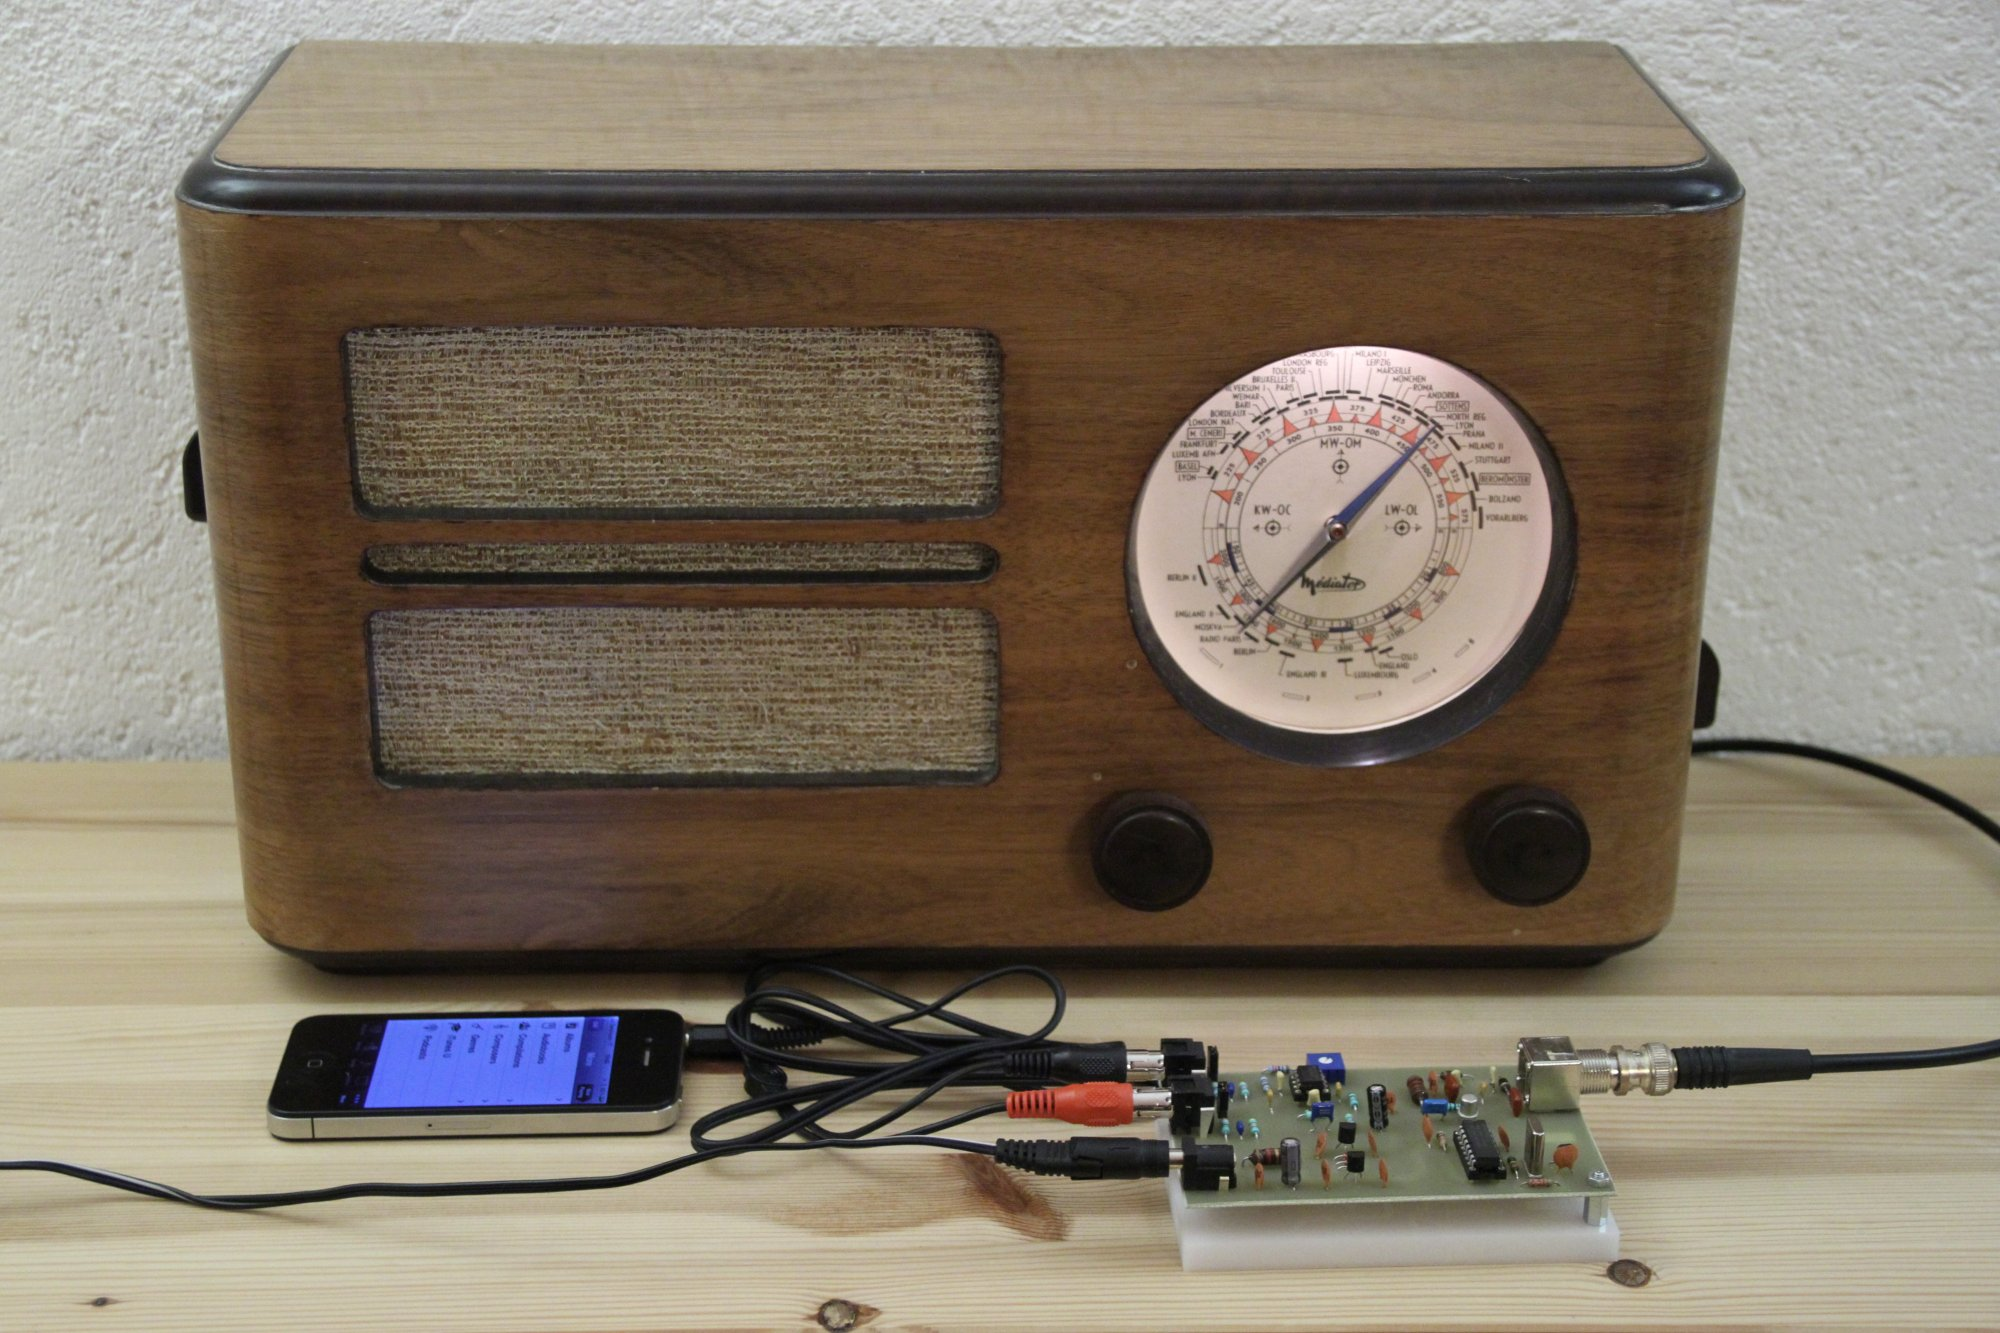 hight resolution of mp3 player am modulator and vintage radio